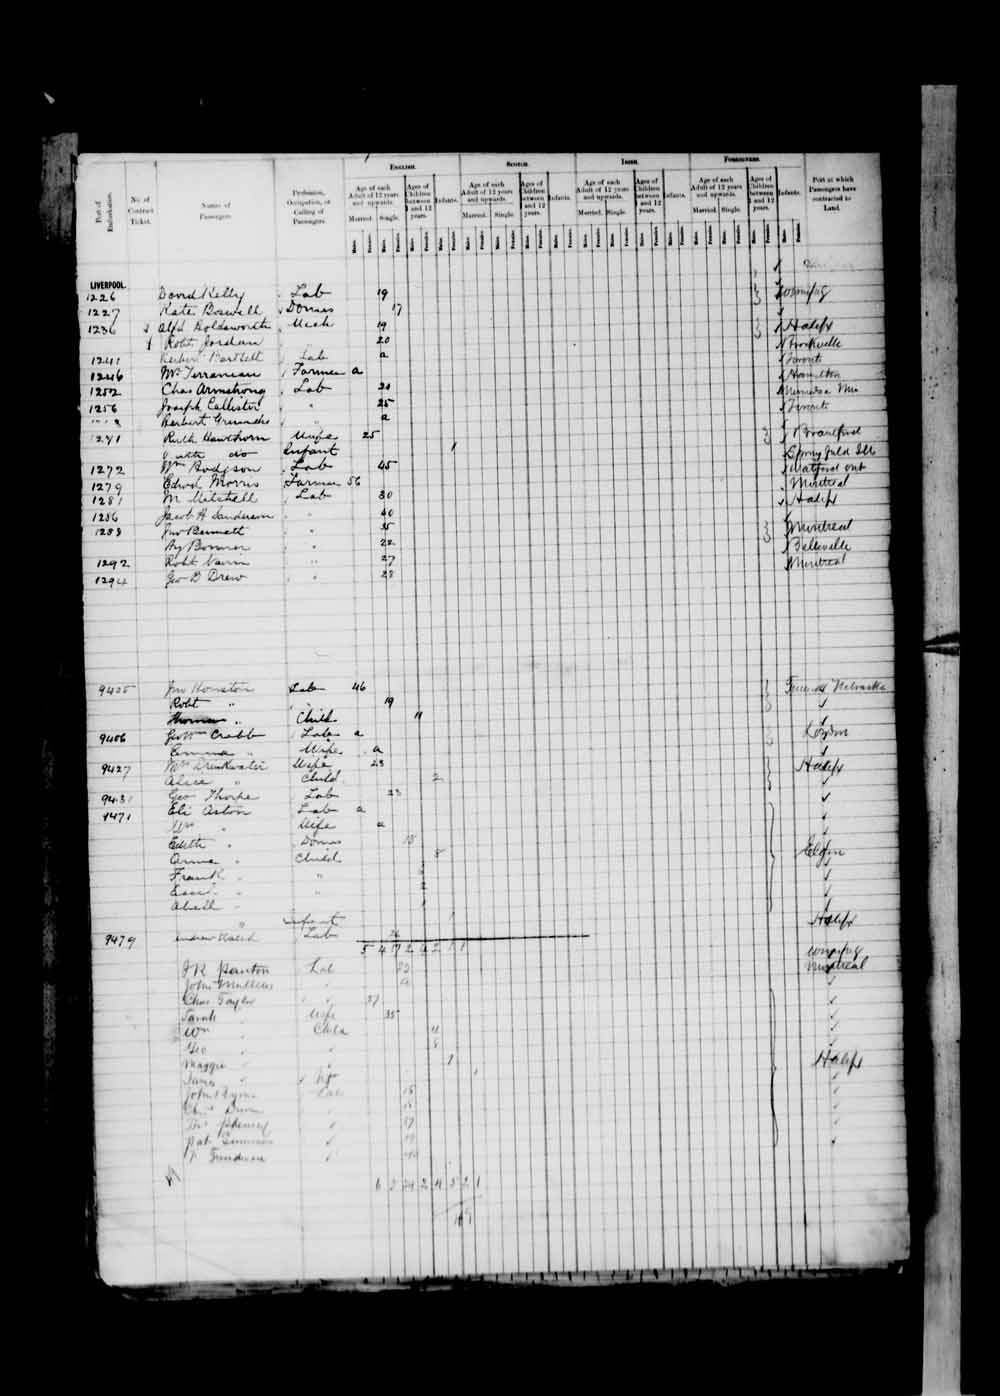 Digitized page of Passenger Lists for Image No.: e003674948